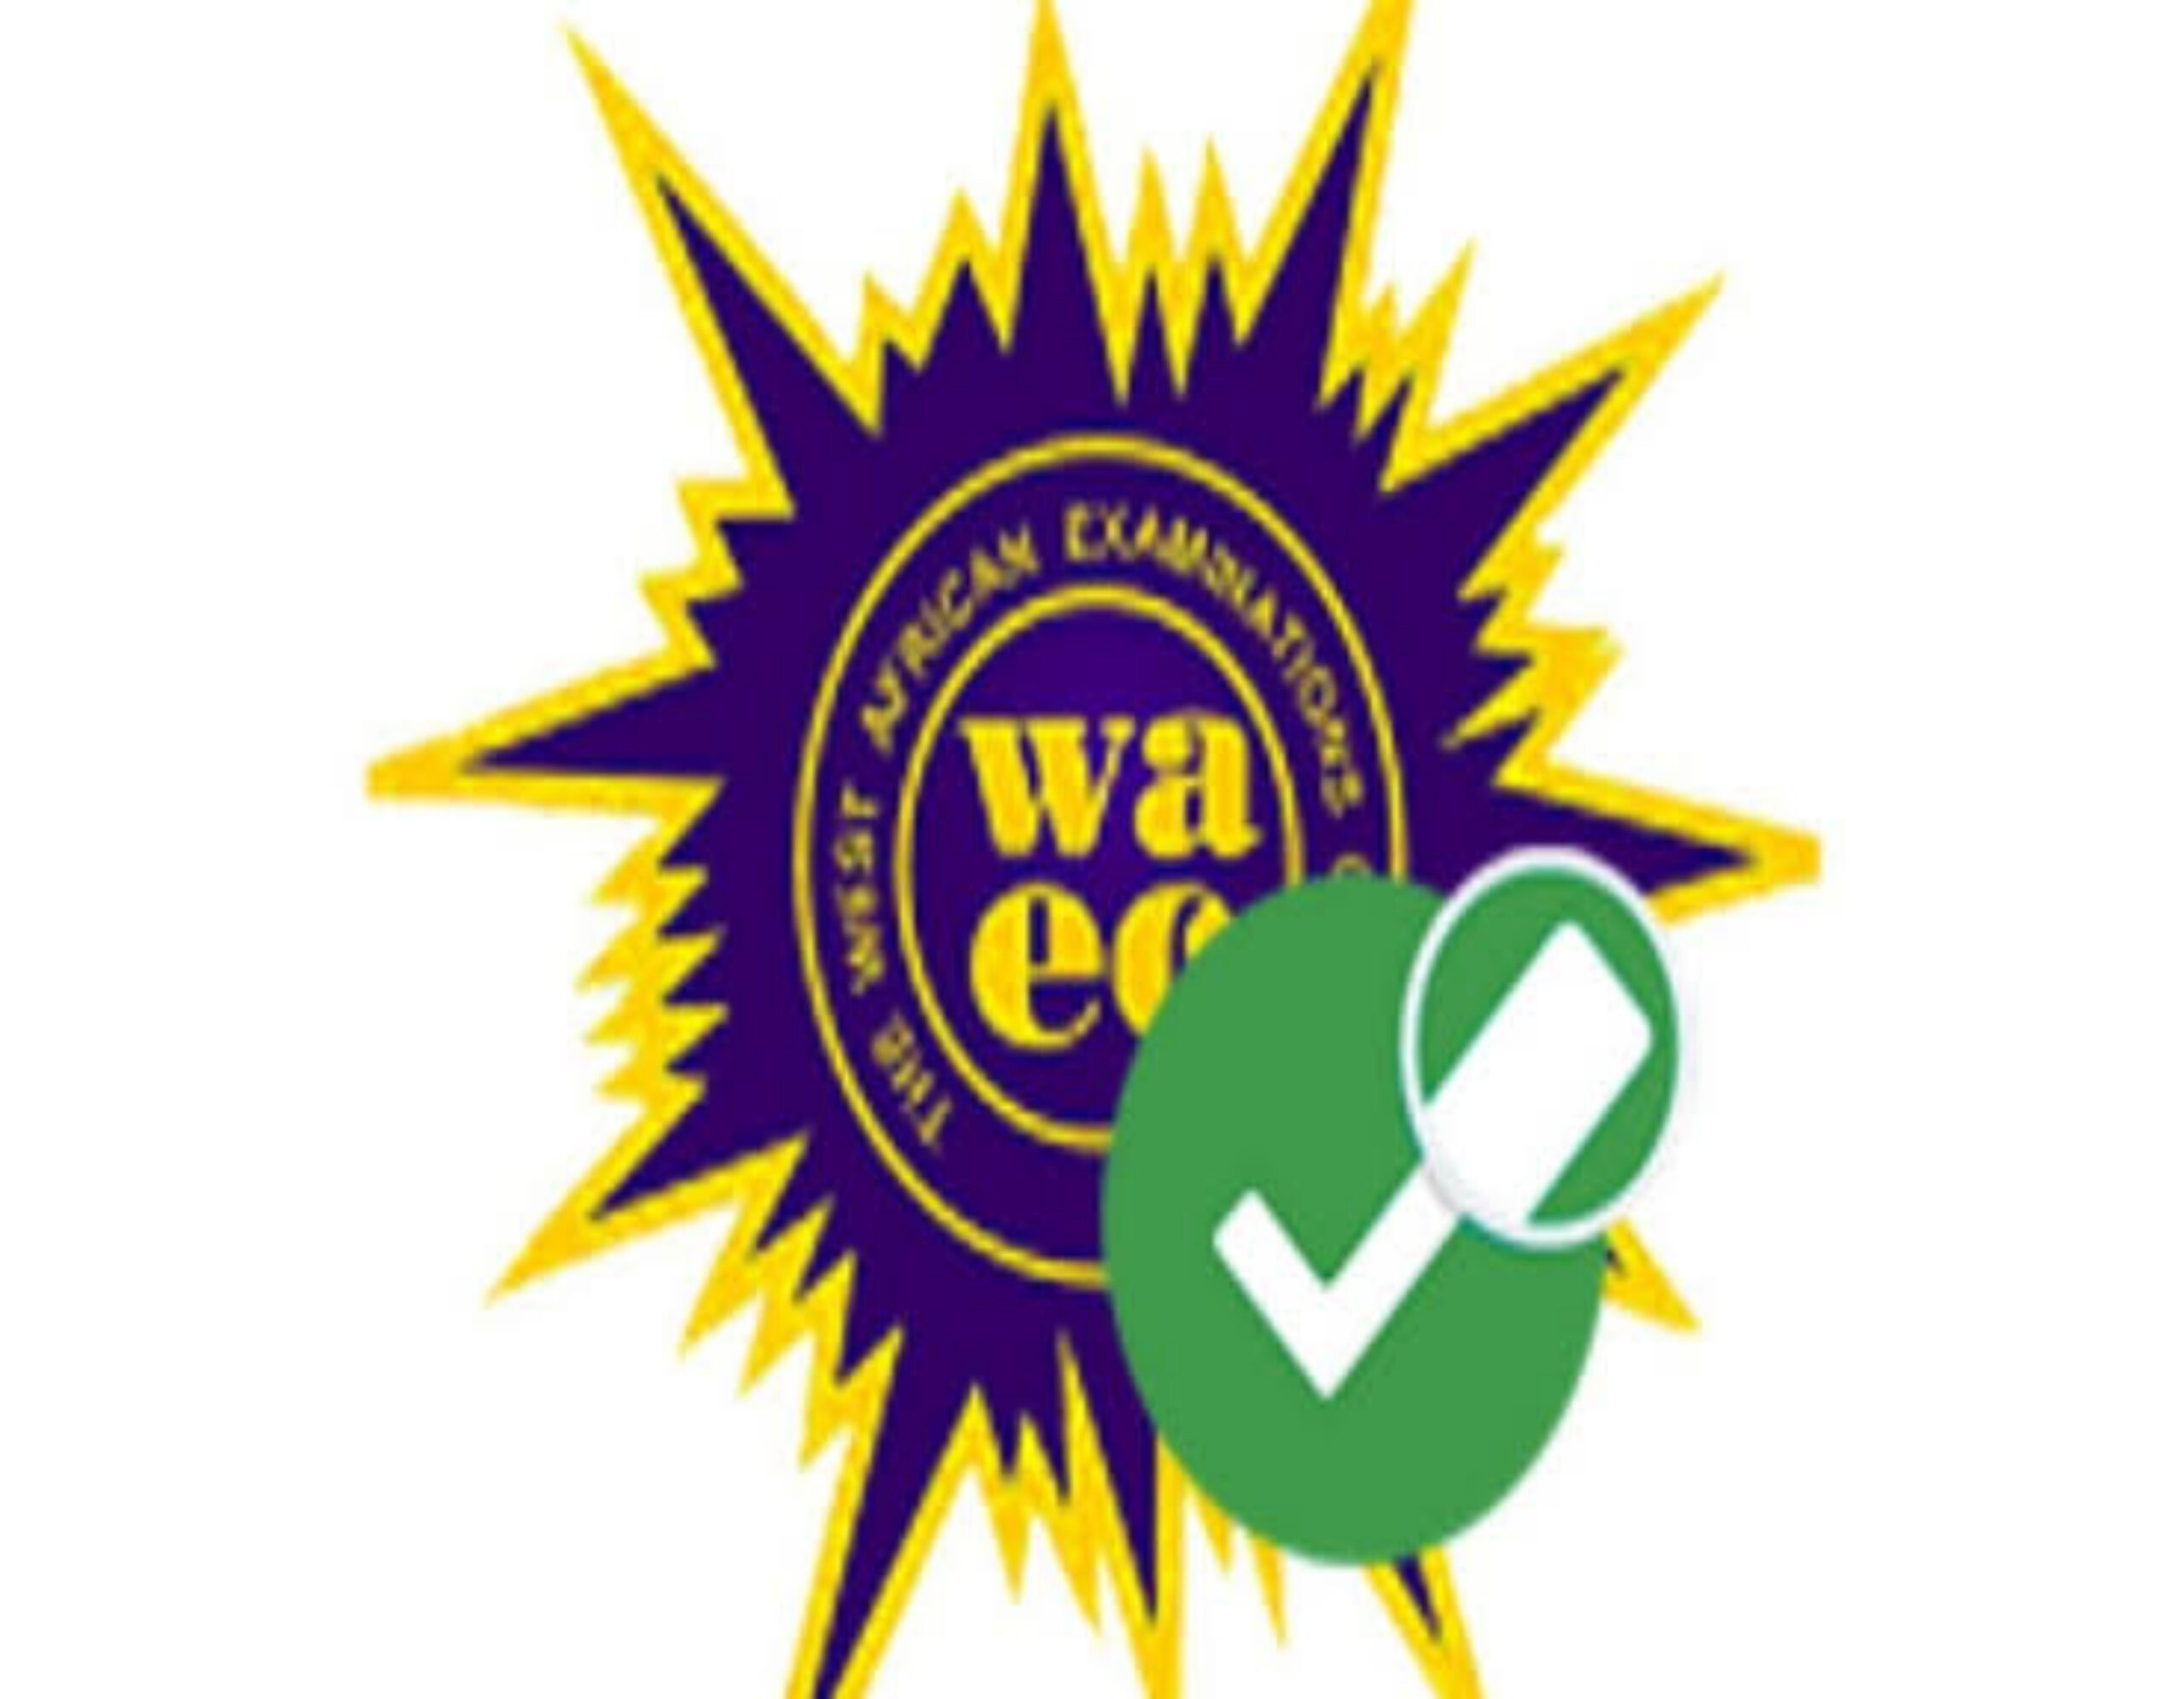 WAEC 2020 Result Is Out See how to check Free www.waecdirect.org waec result checker